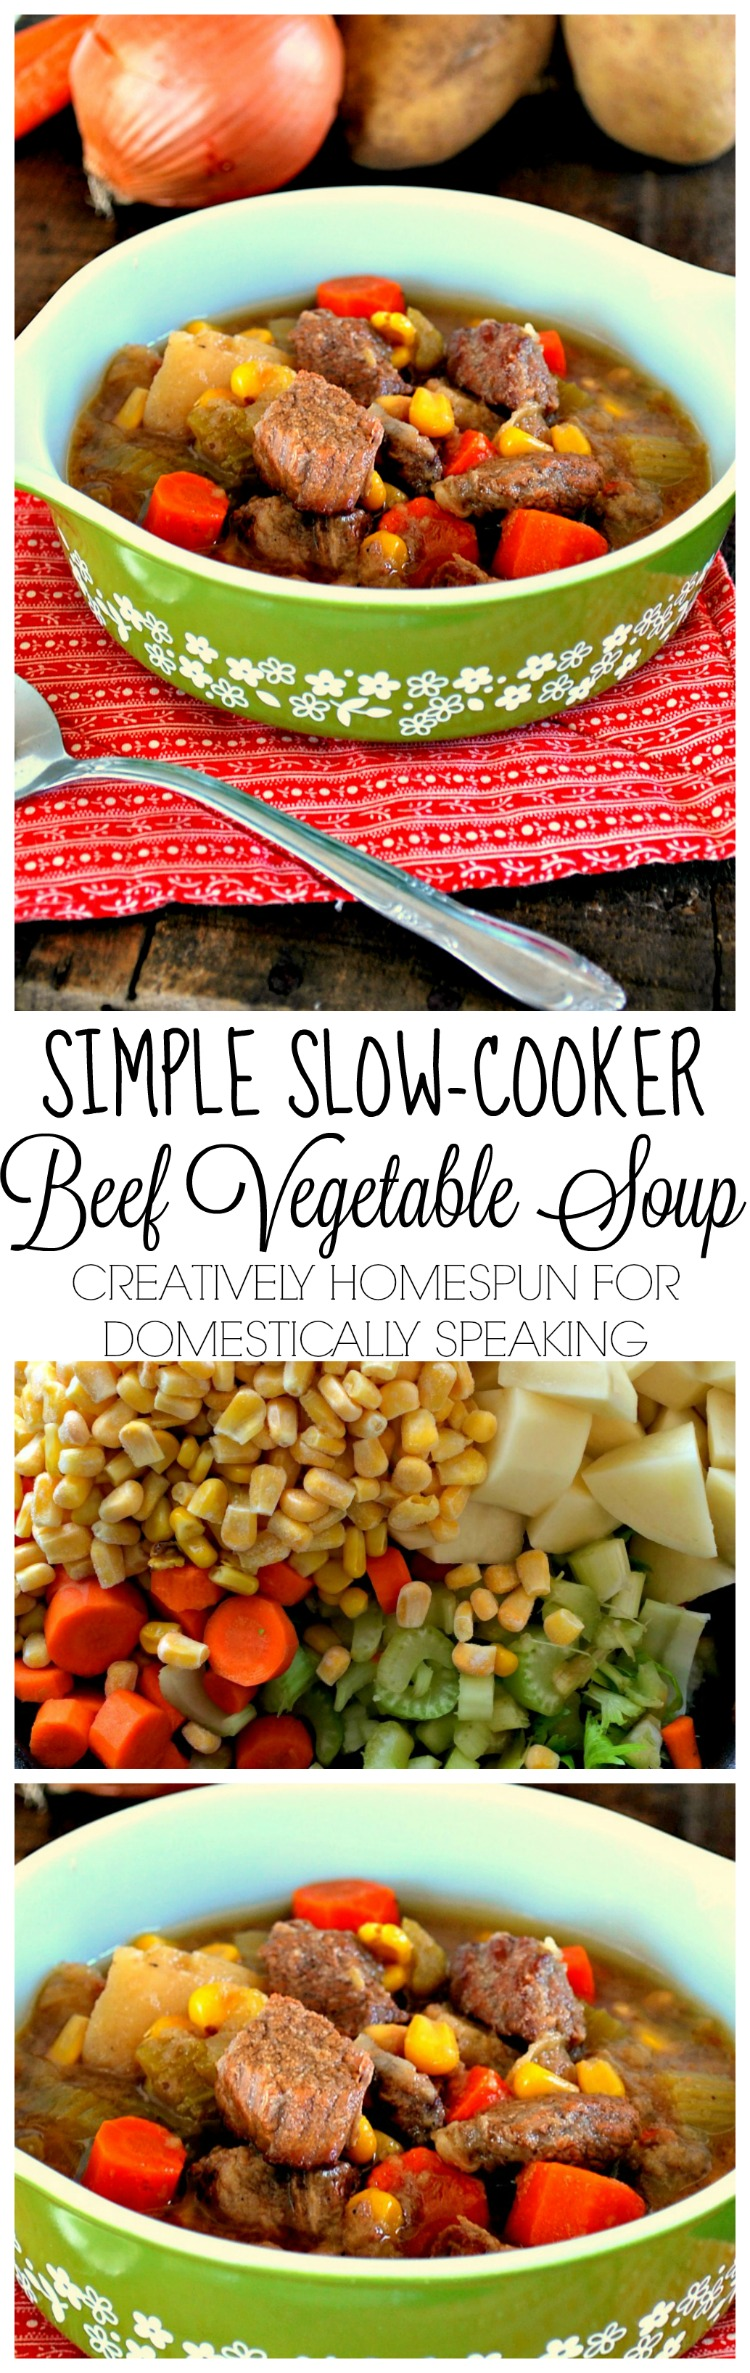 Simple Slow Cooker Beef Vegetable Soup an easy weeknight recipe for your crockpot